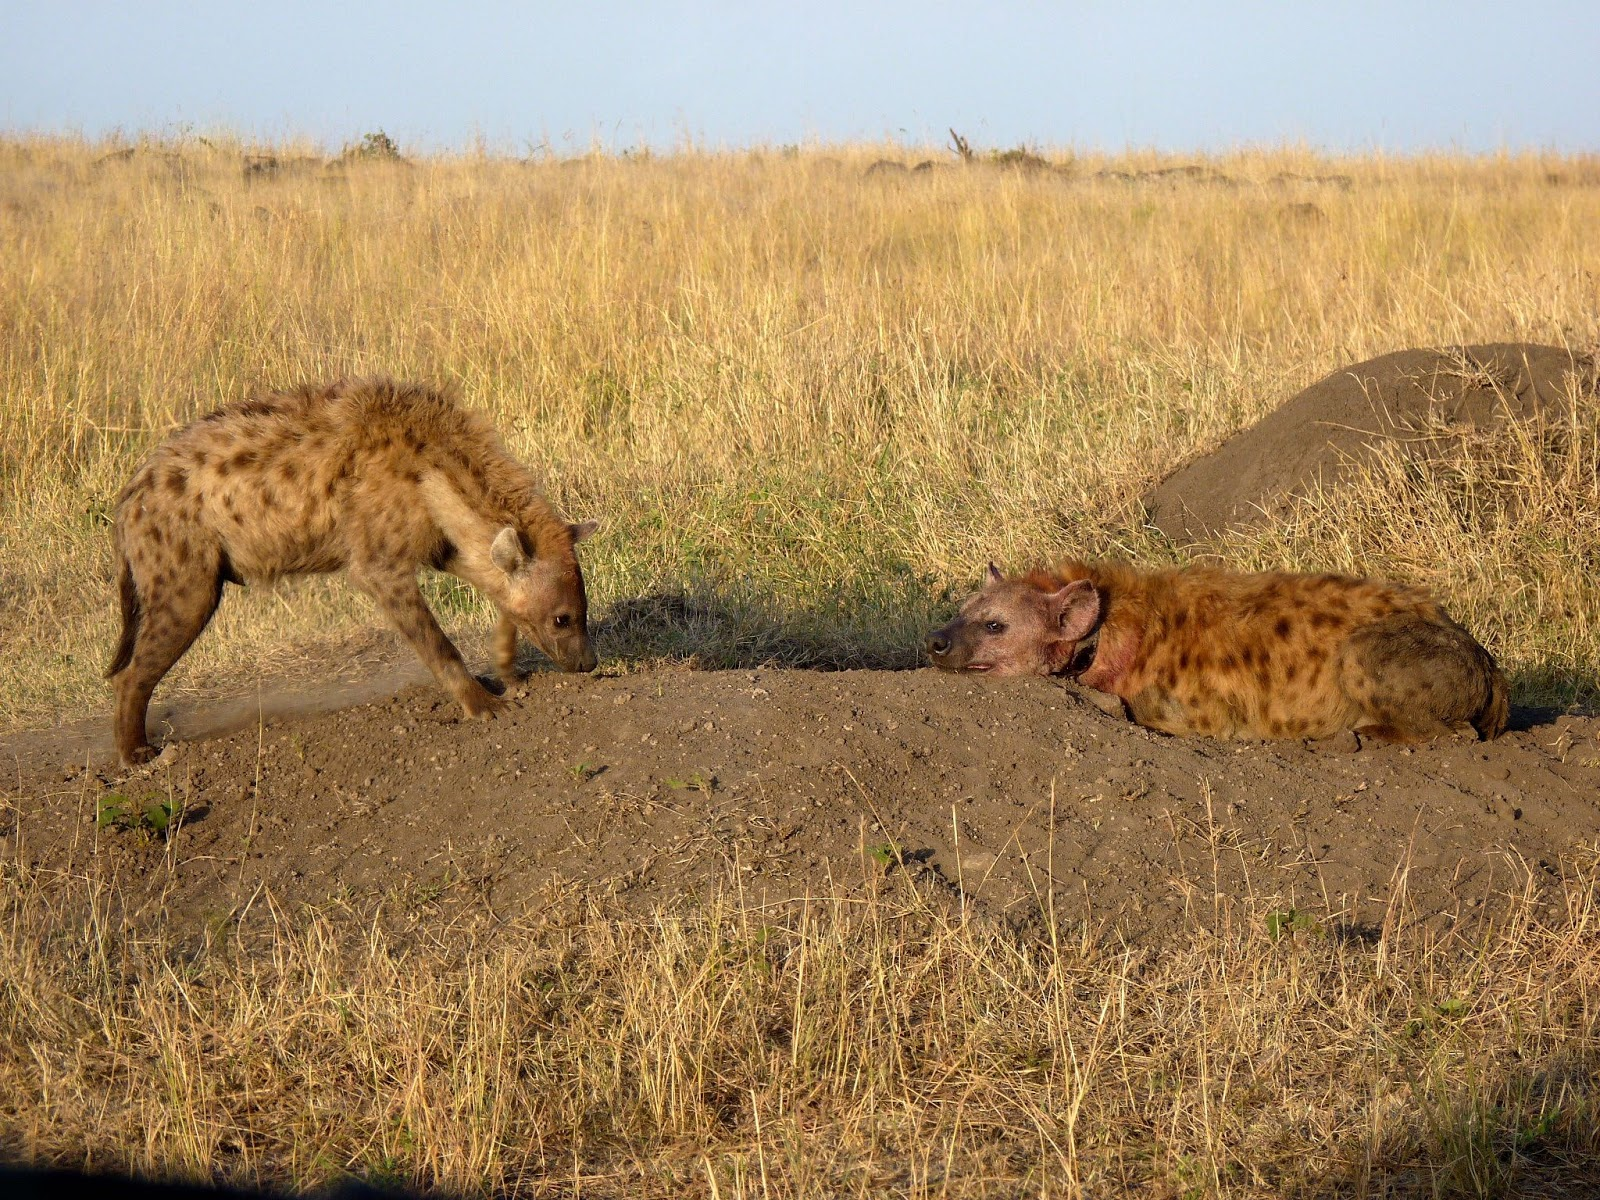 Notes From Kenya Msu Hyena Research Hyenas Why